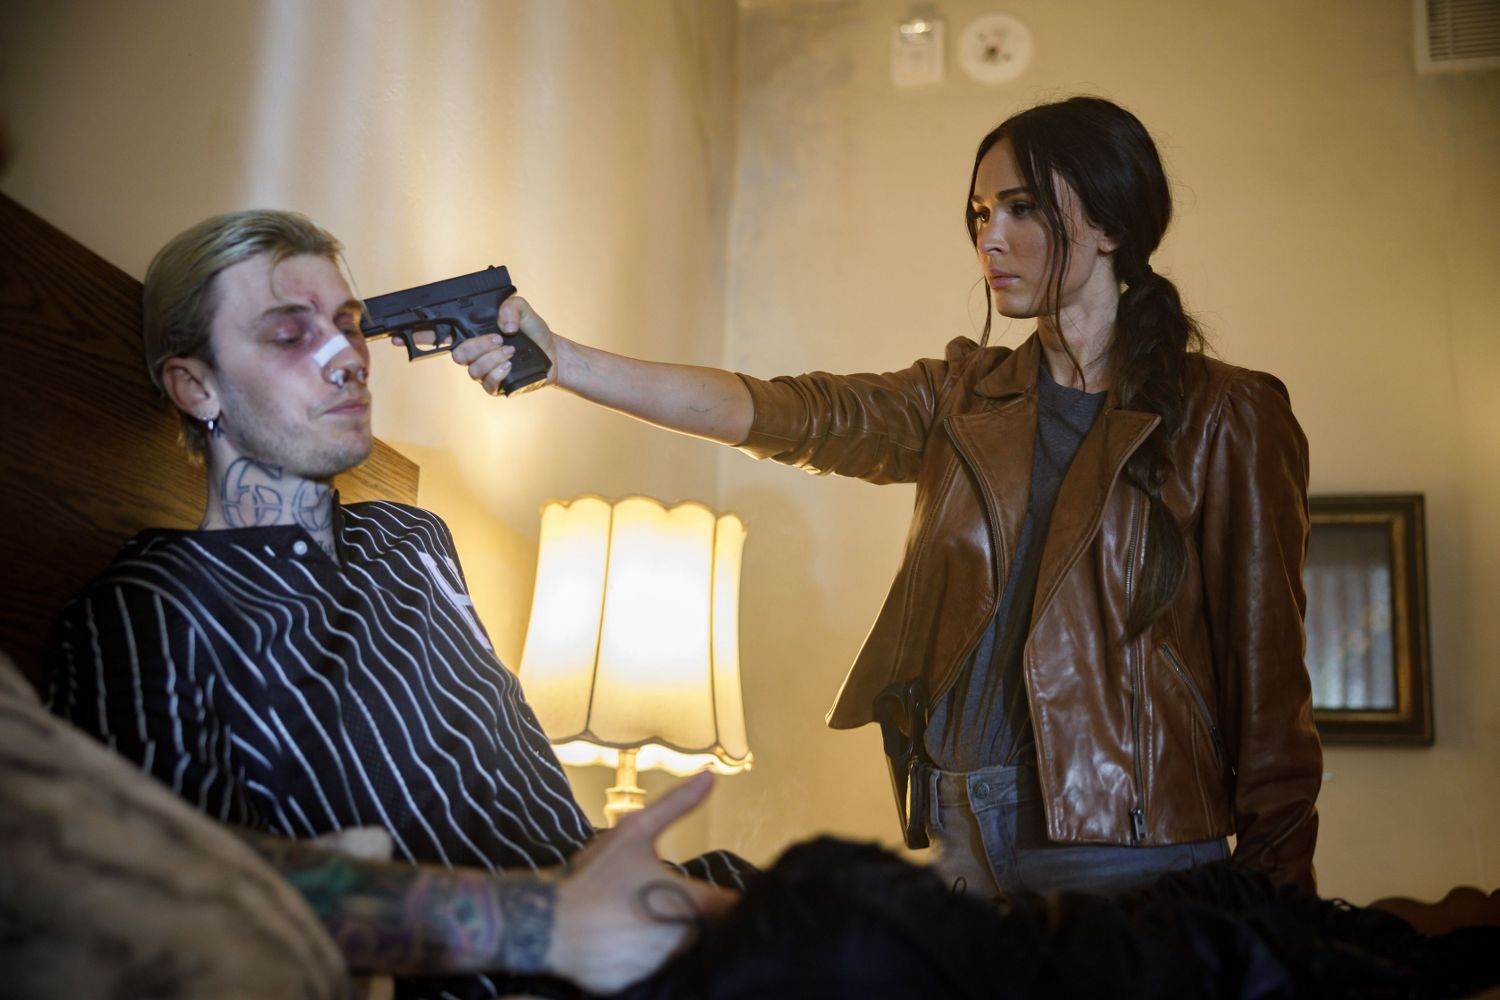 Colson Baker and Megan Fox in MIDNIGHT IN THE SWITCHGRASS (Lionsgate UK)